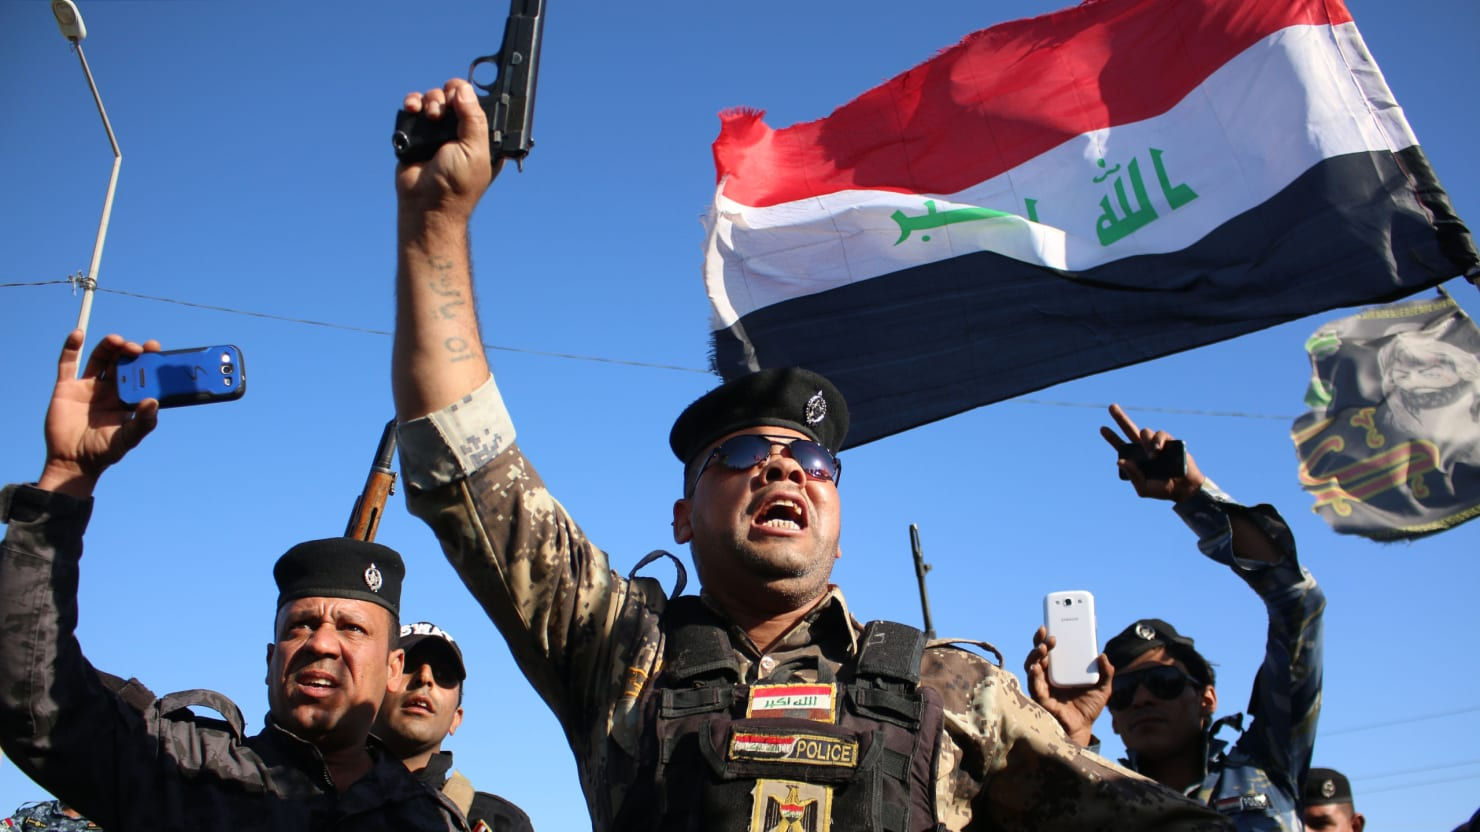 Tikrit After ISIS: A Ghost Town Ruled by Gunmen